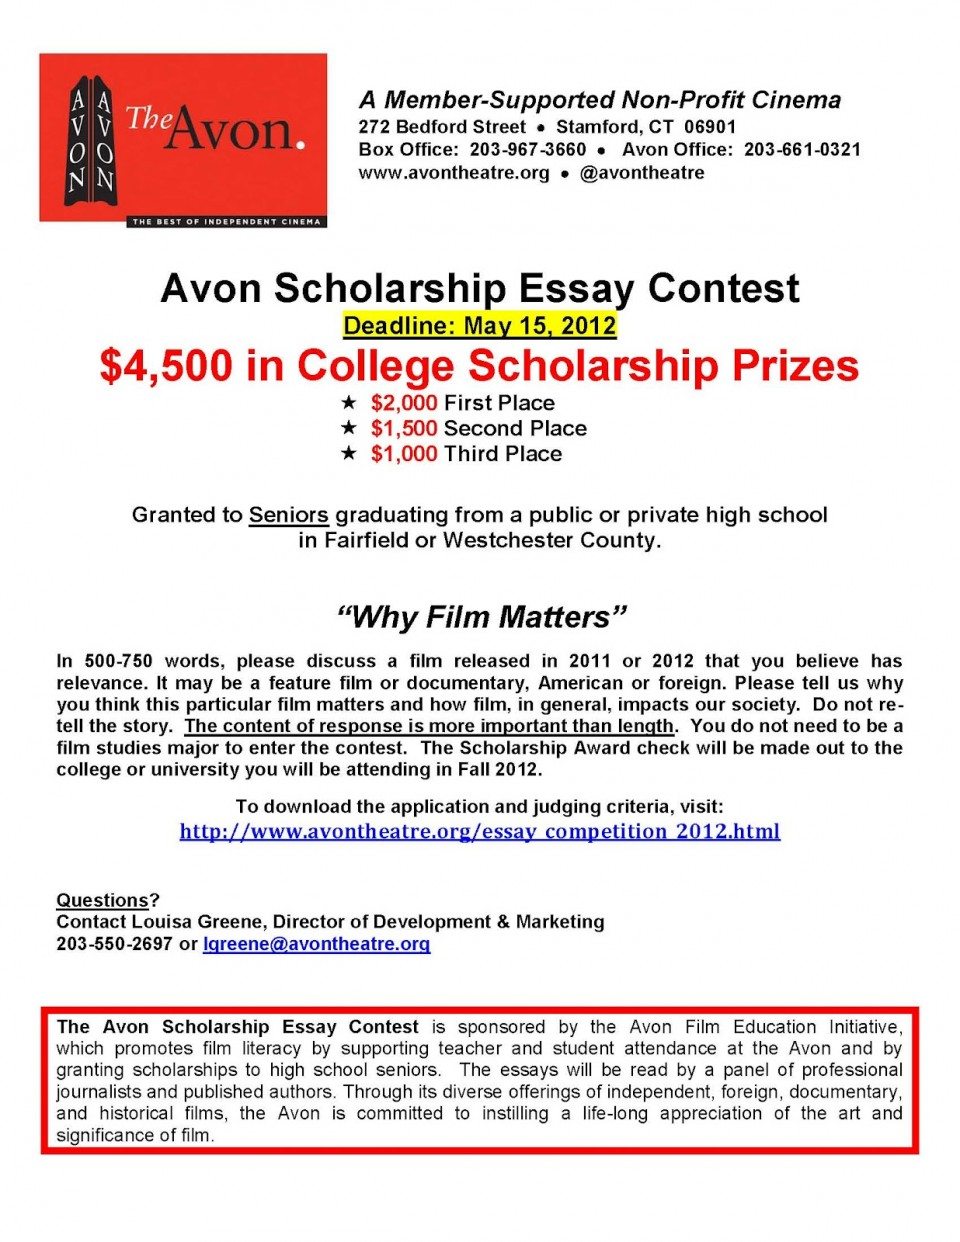 002 No Essay Collegeip Prowler Freeips For High School Seniors Avonscholarshipessaycontest2012 In Texas California Class Of Short Example Wondrous Scholarship Scholarships 2019 Graduates Applications 960